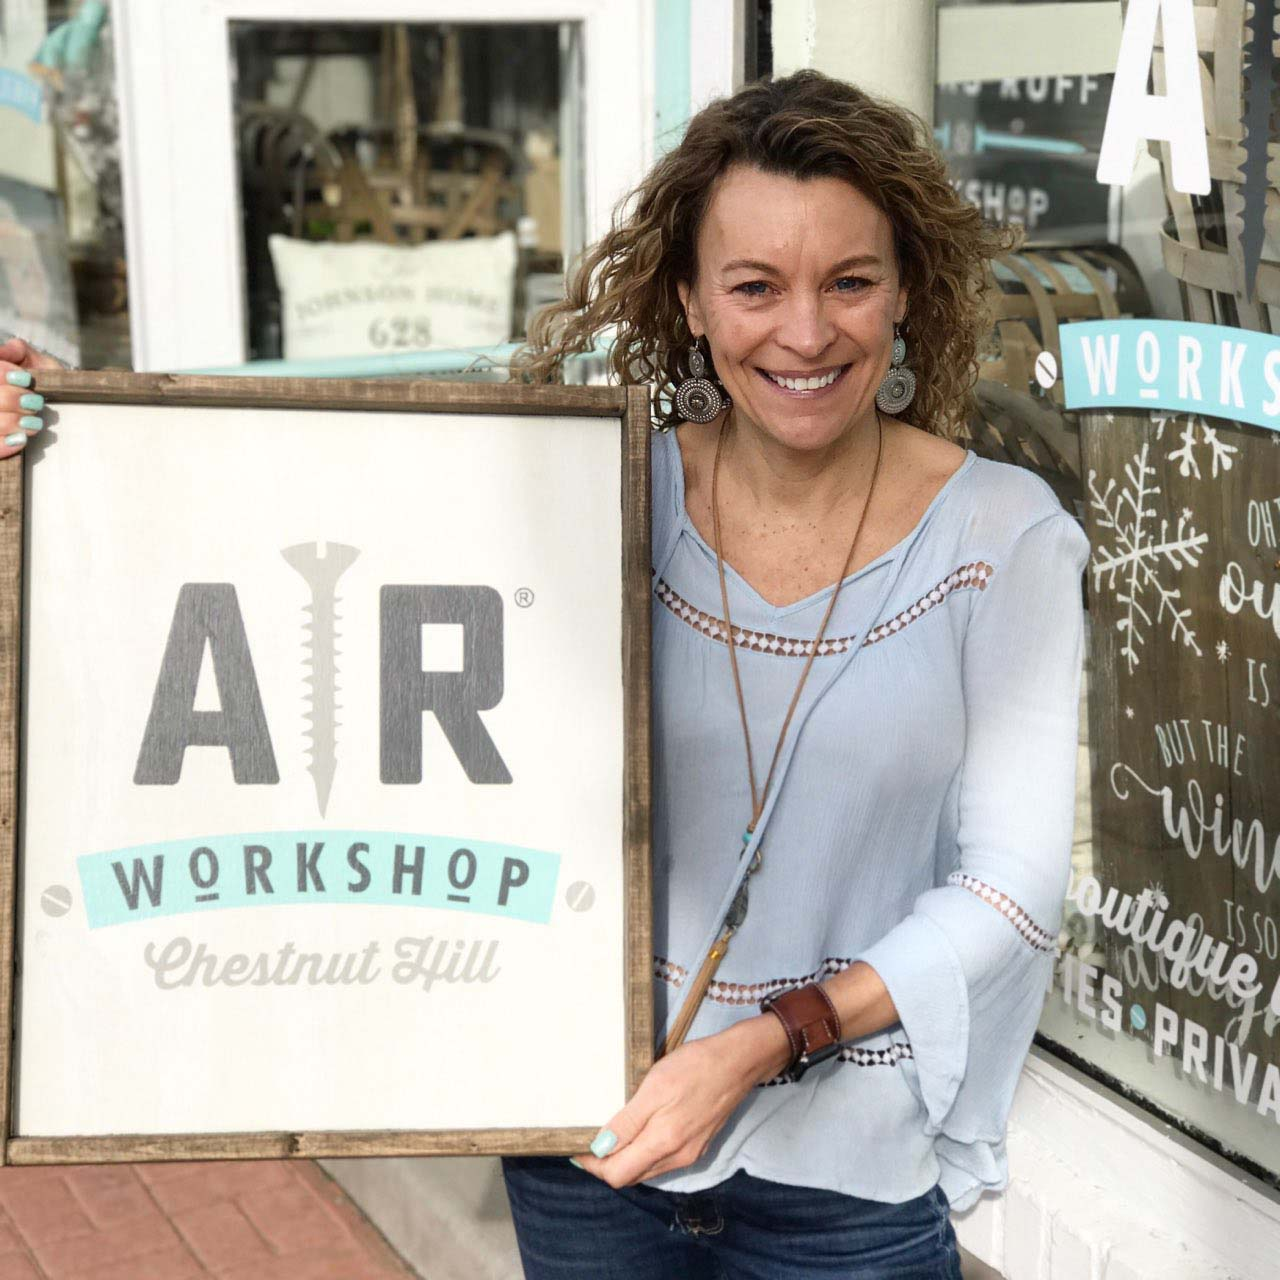 ar workshop chestnut hill pa